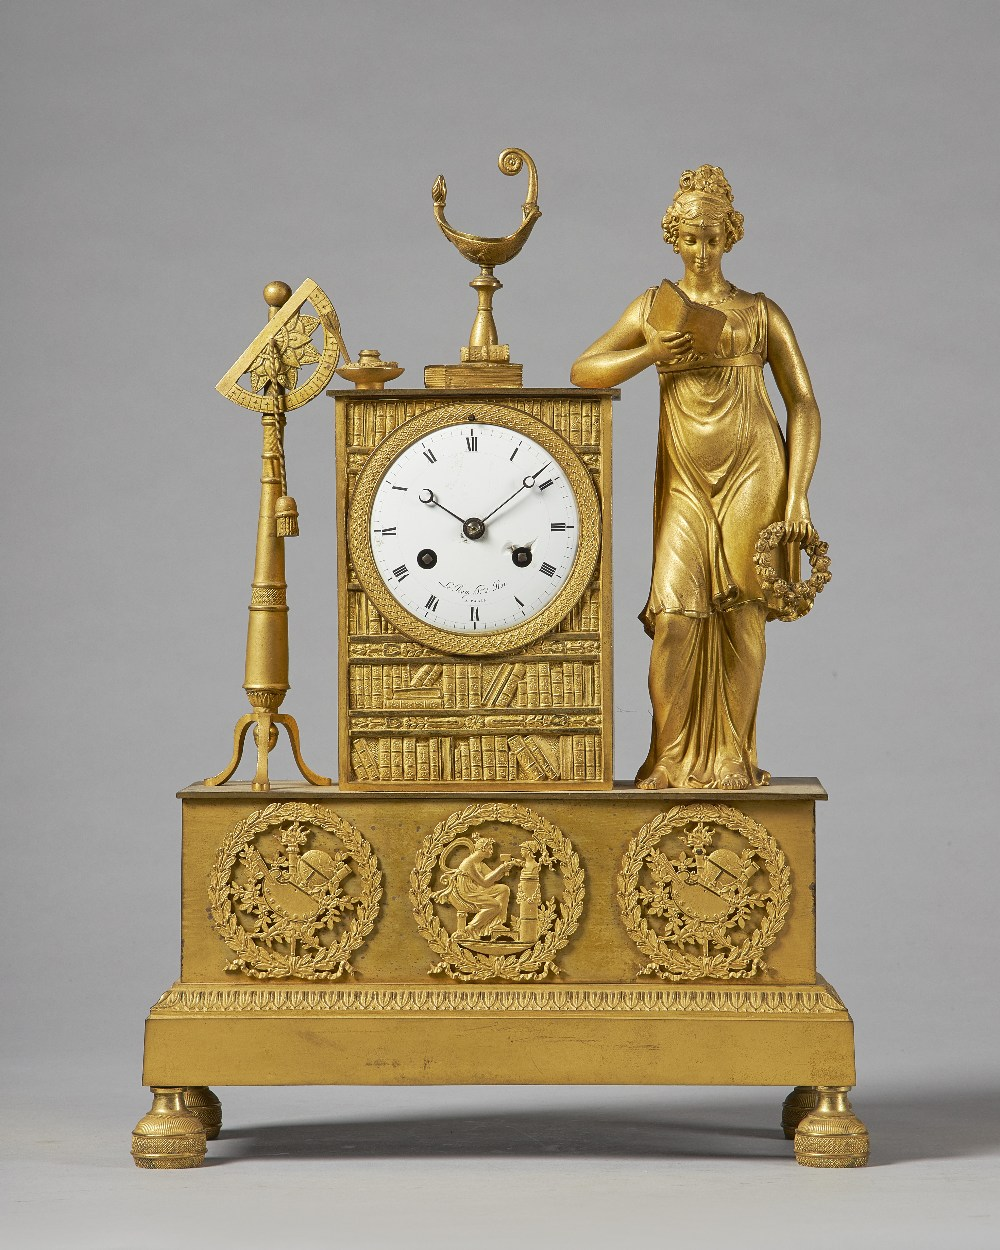 Lot 701 - An Empire ormolu mantel clock Signed Le Roy, Paris Modelled with a standing female figure reading,